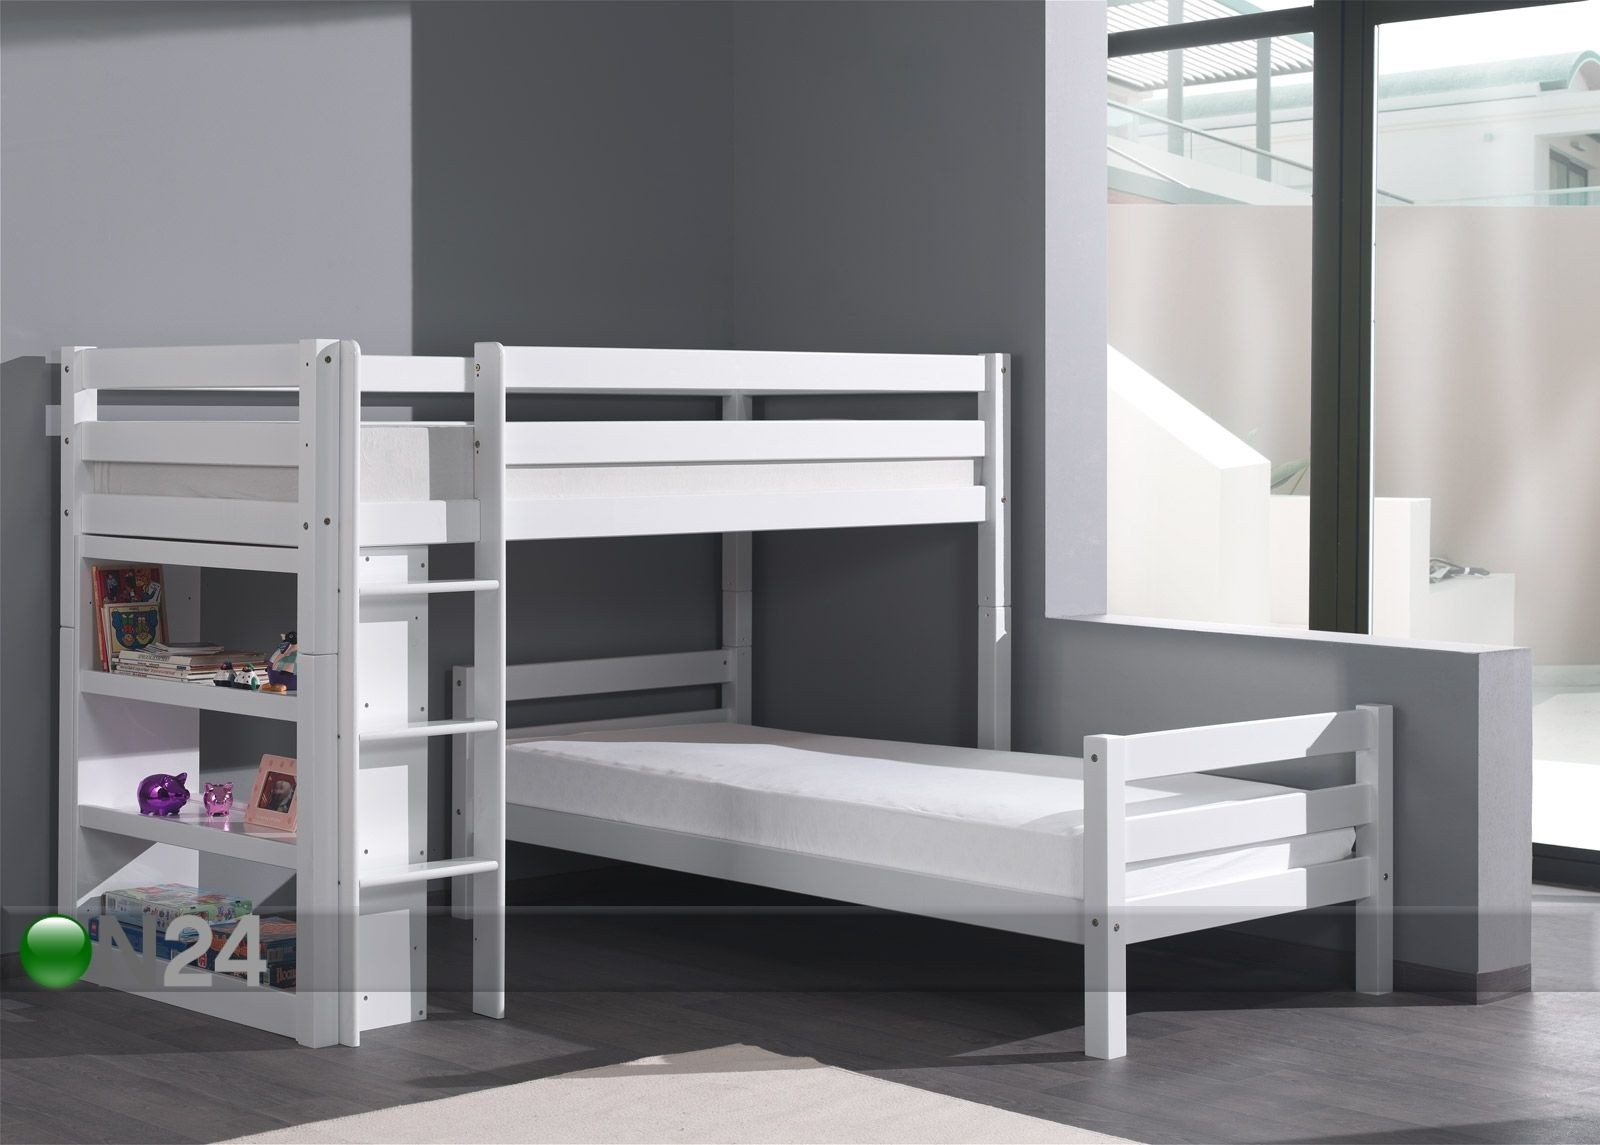 corner loft bunk beds ideas on fotercorner unit twin beds